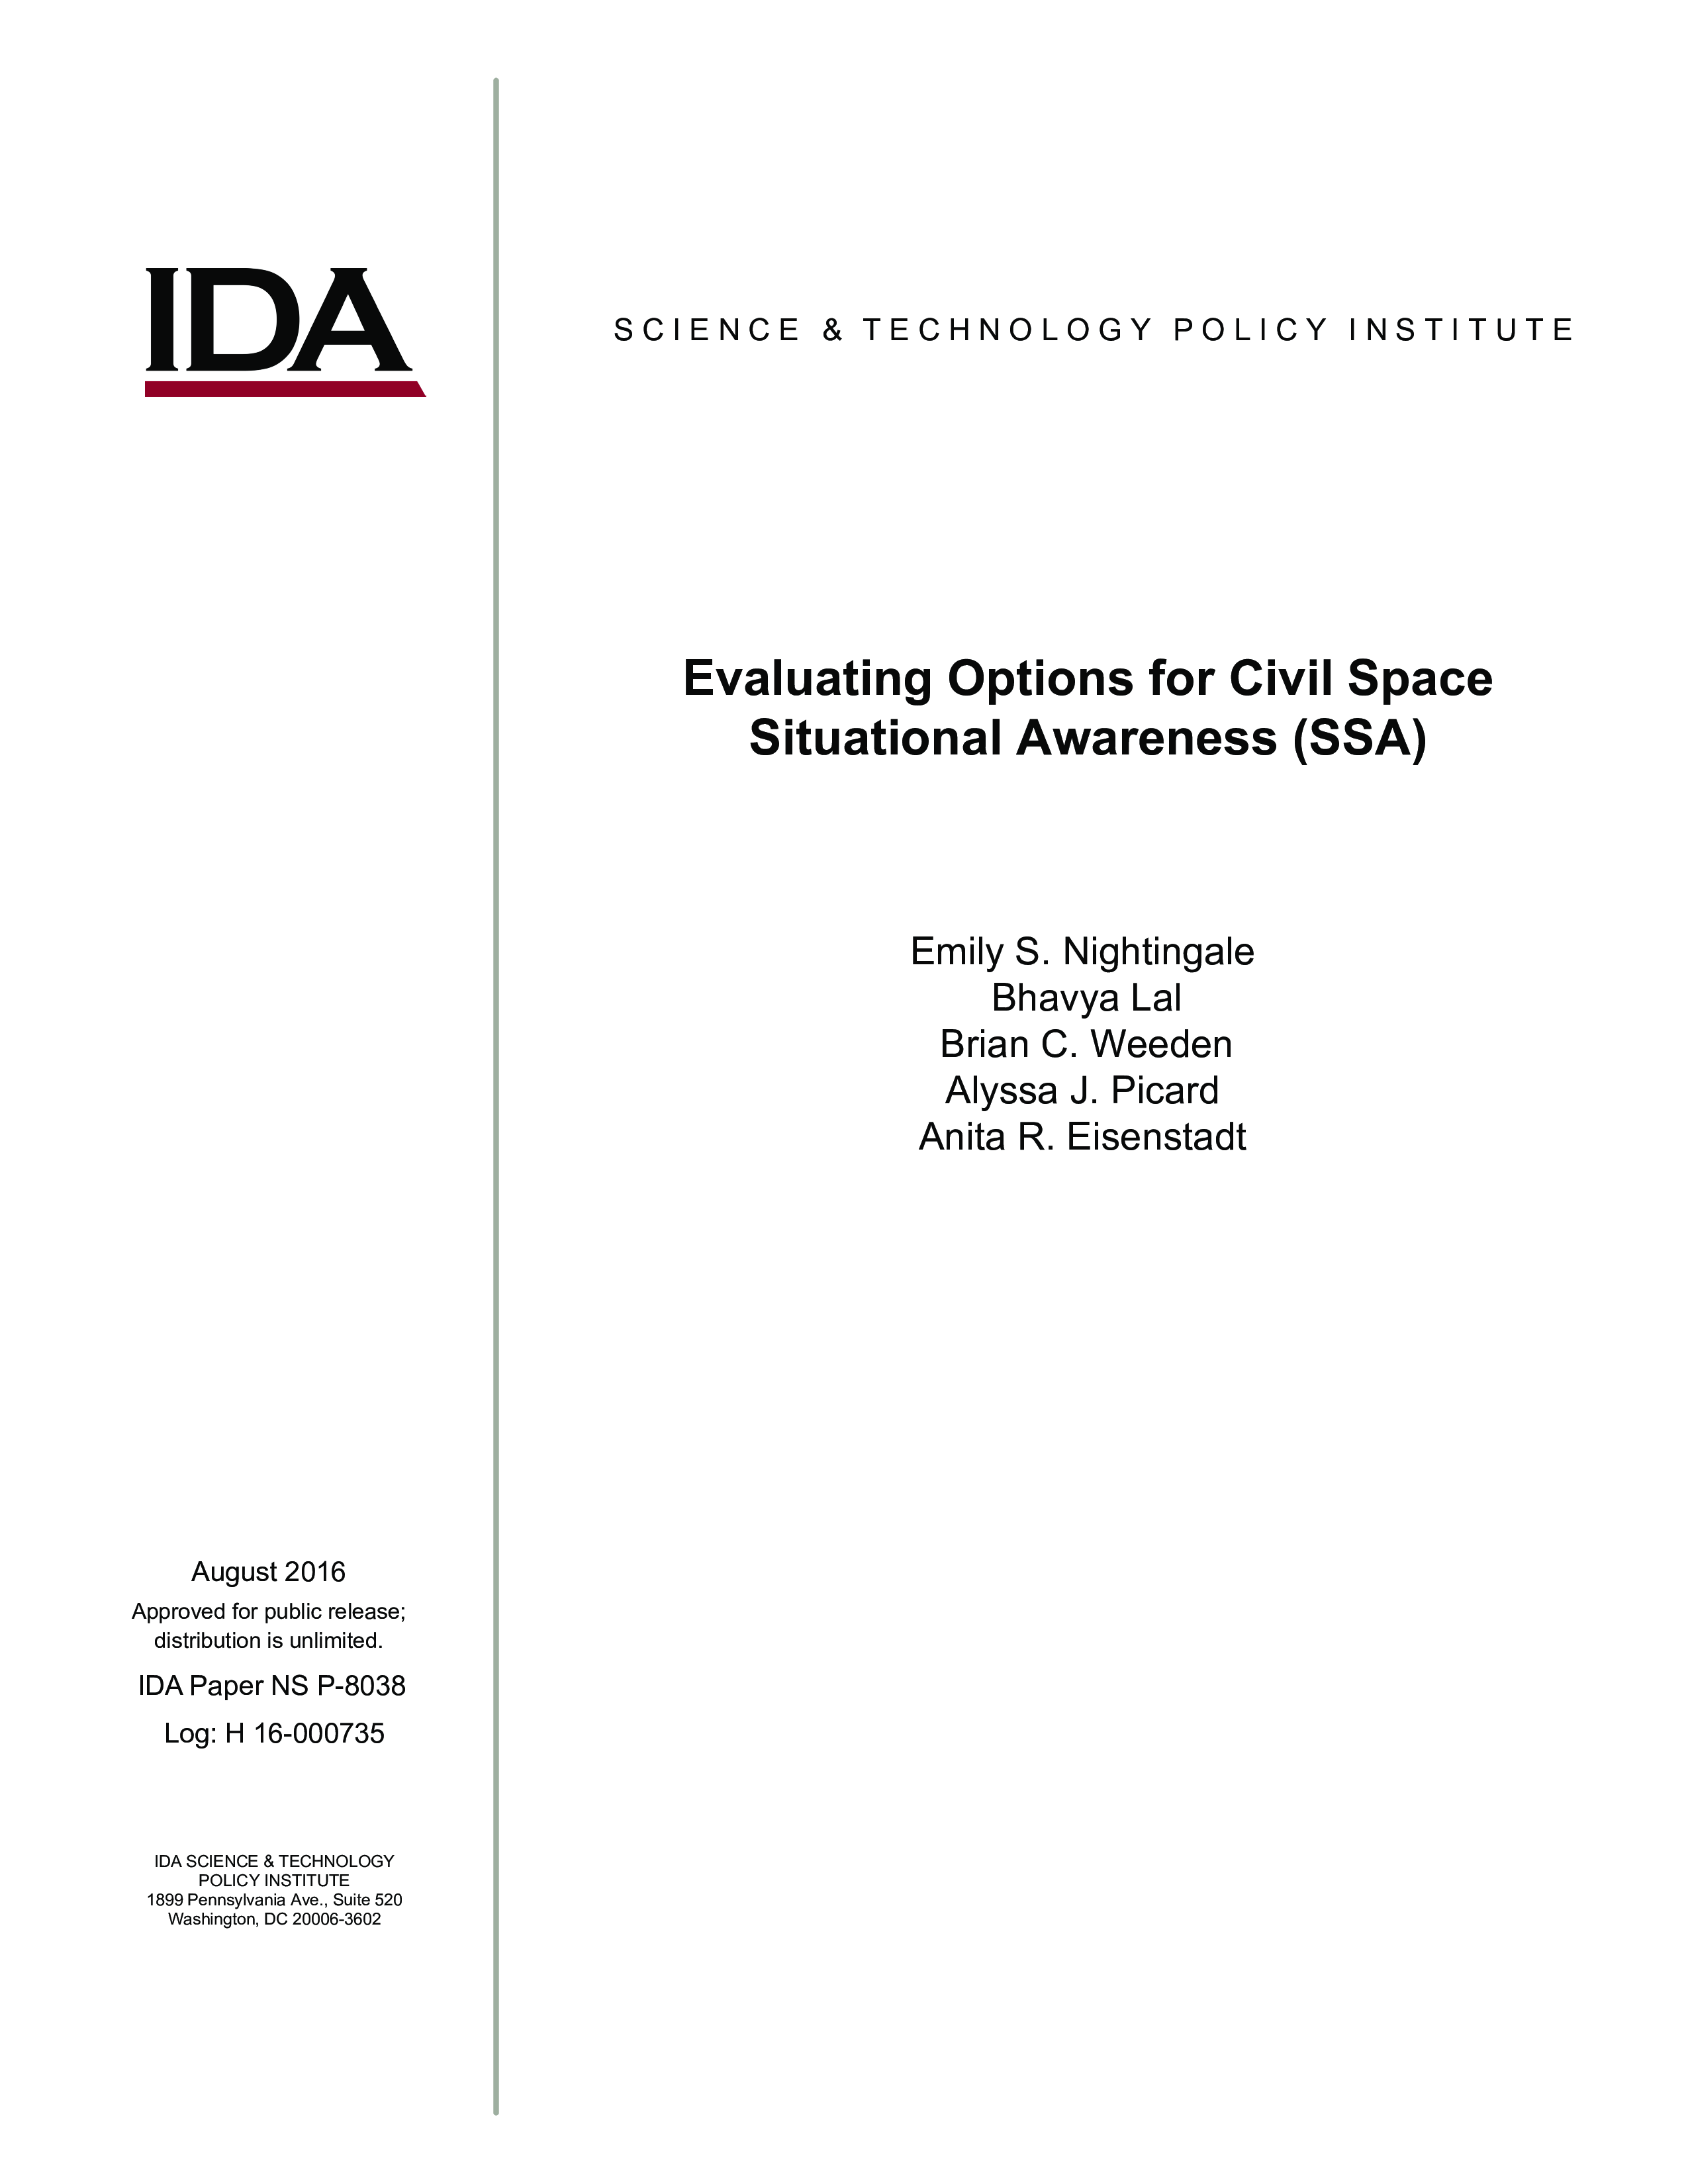 Evaluating Options for Civil Space Situational Awareness (SSA)